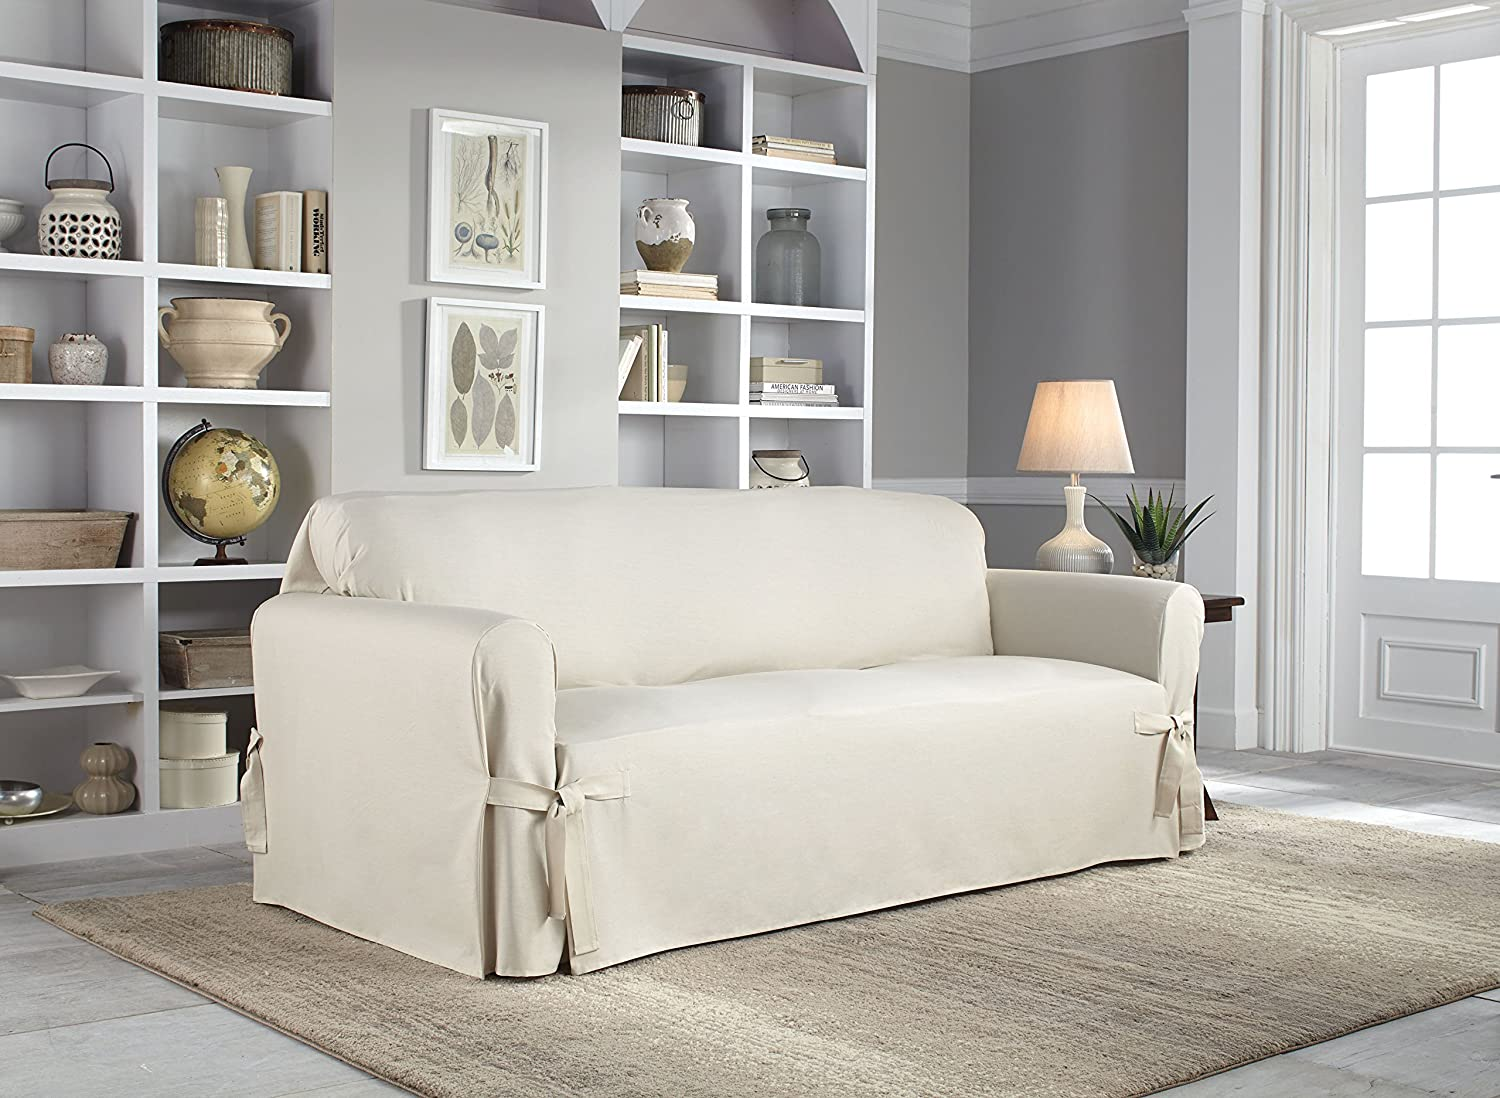 Serta Relaxed Fit Duck Slipcover Box Cushion Decorator Set (3 Piece), Natural Perfect Fit Industries 864806